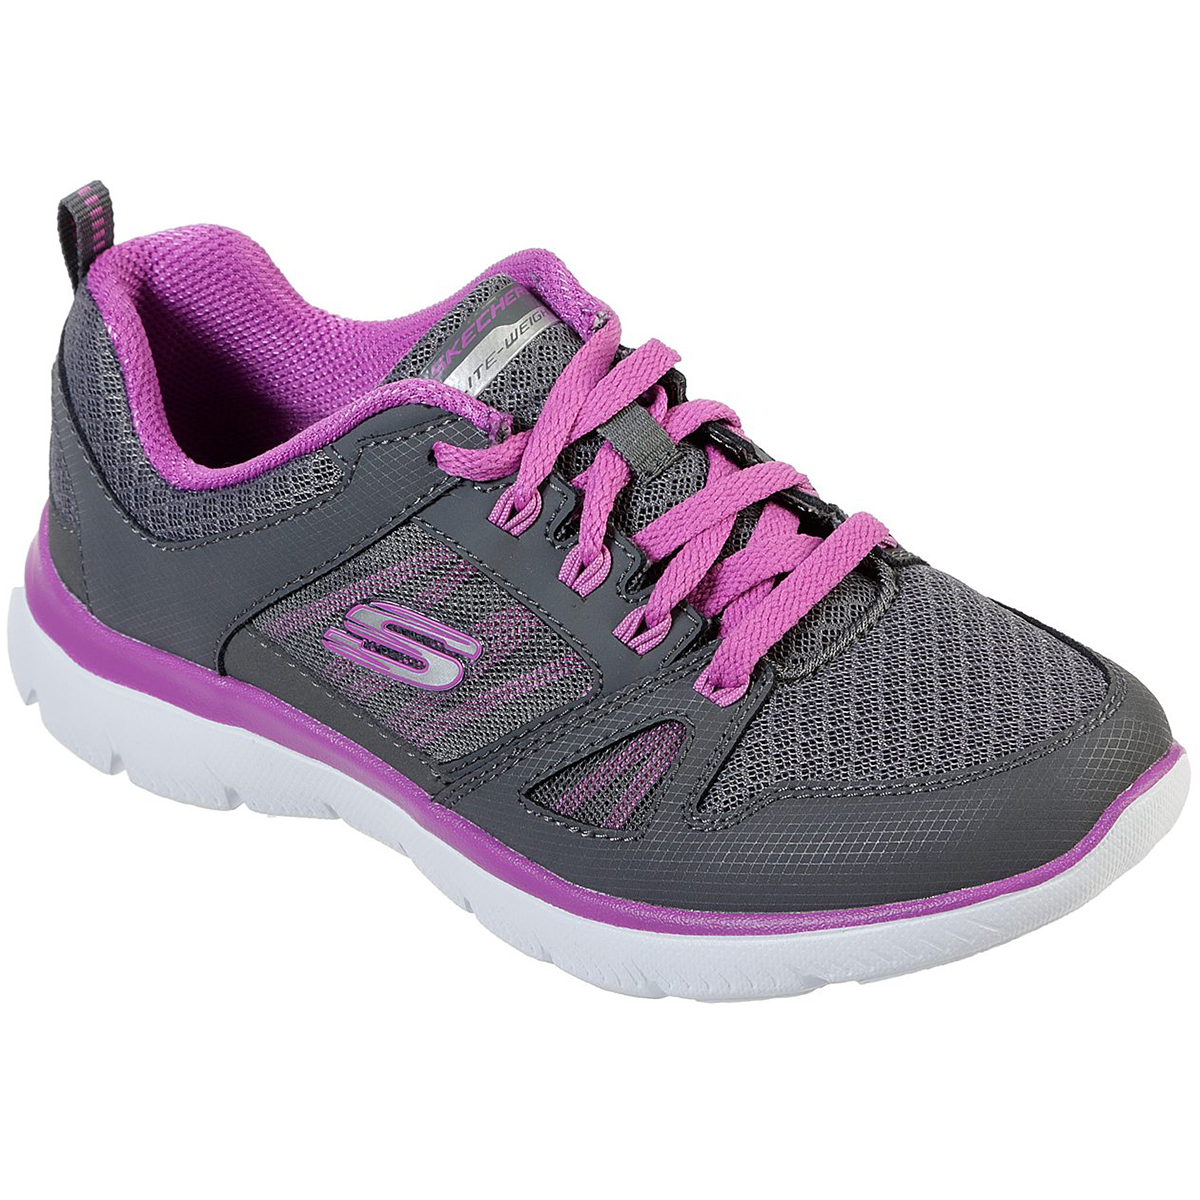 Skechers Women's Summits New World Sneakers - Black, 7.5